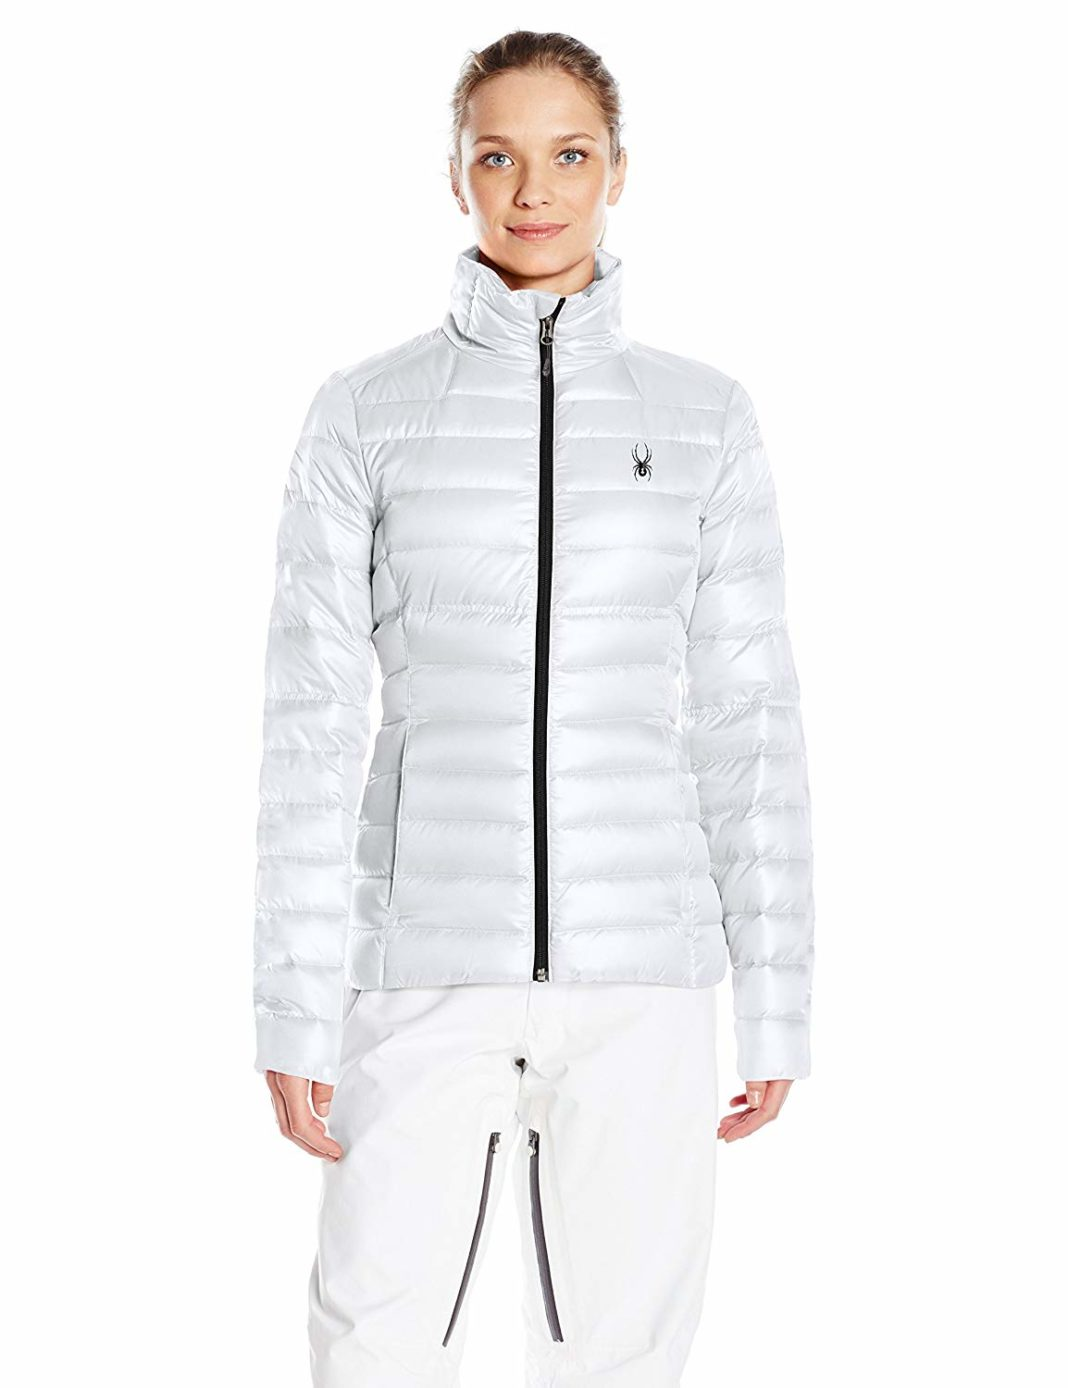 best down jackets for women - Spyder